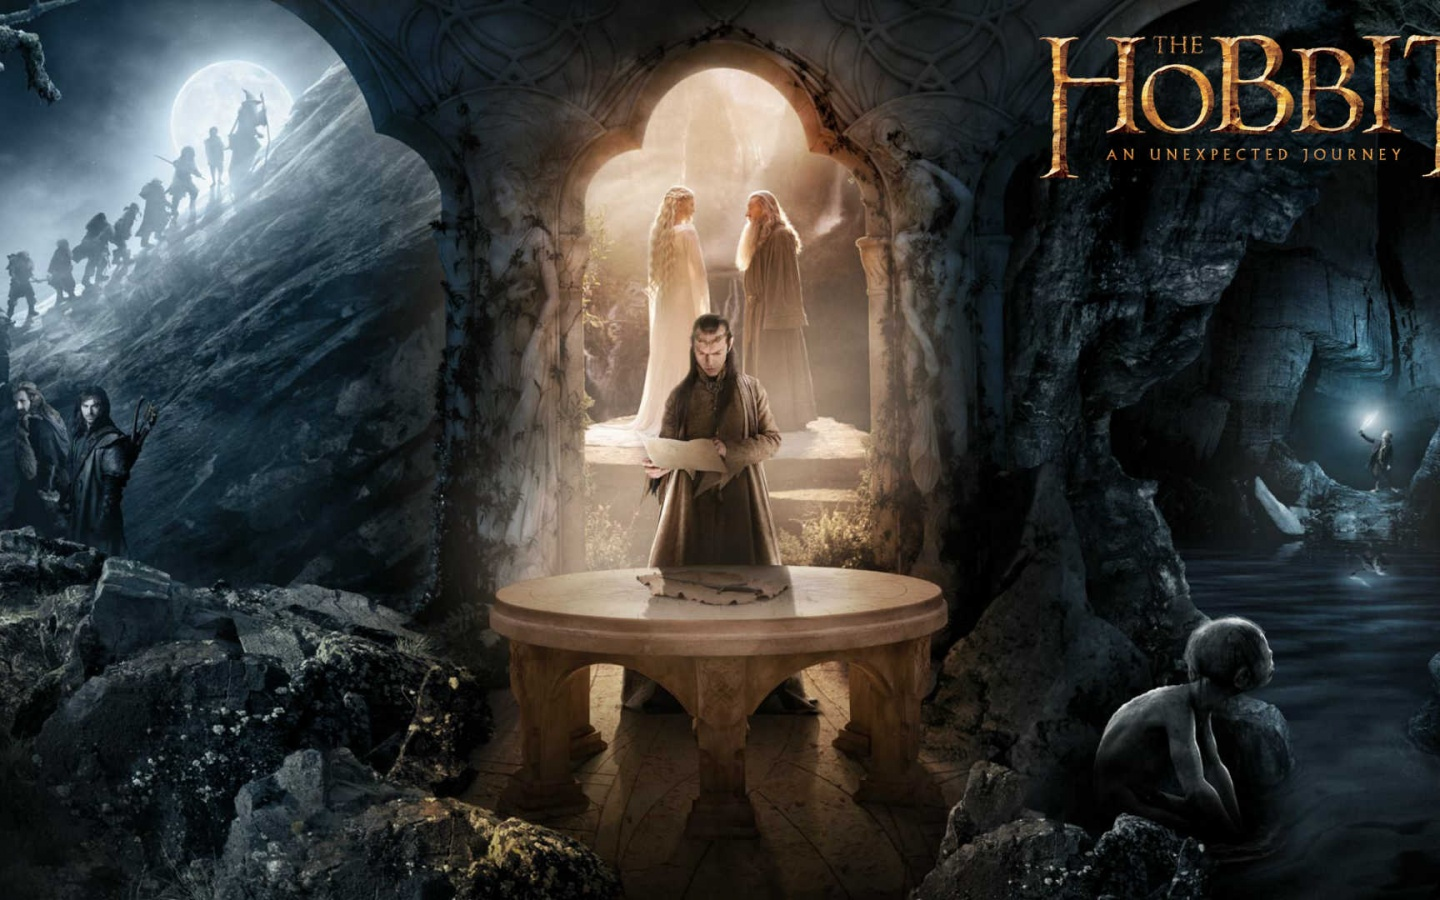 1440x900 The Hobbit   Elrond desktop PC and Mac wallpaper 1440x900